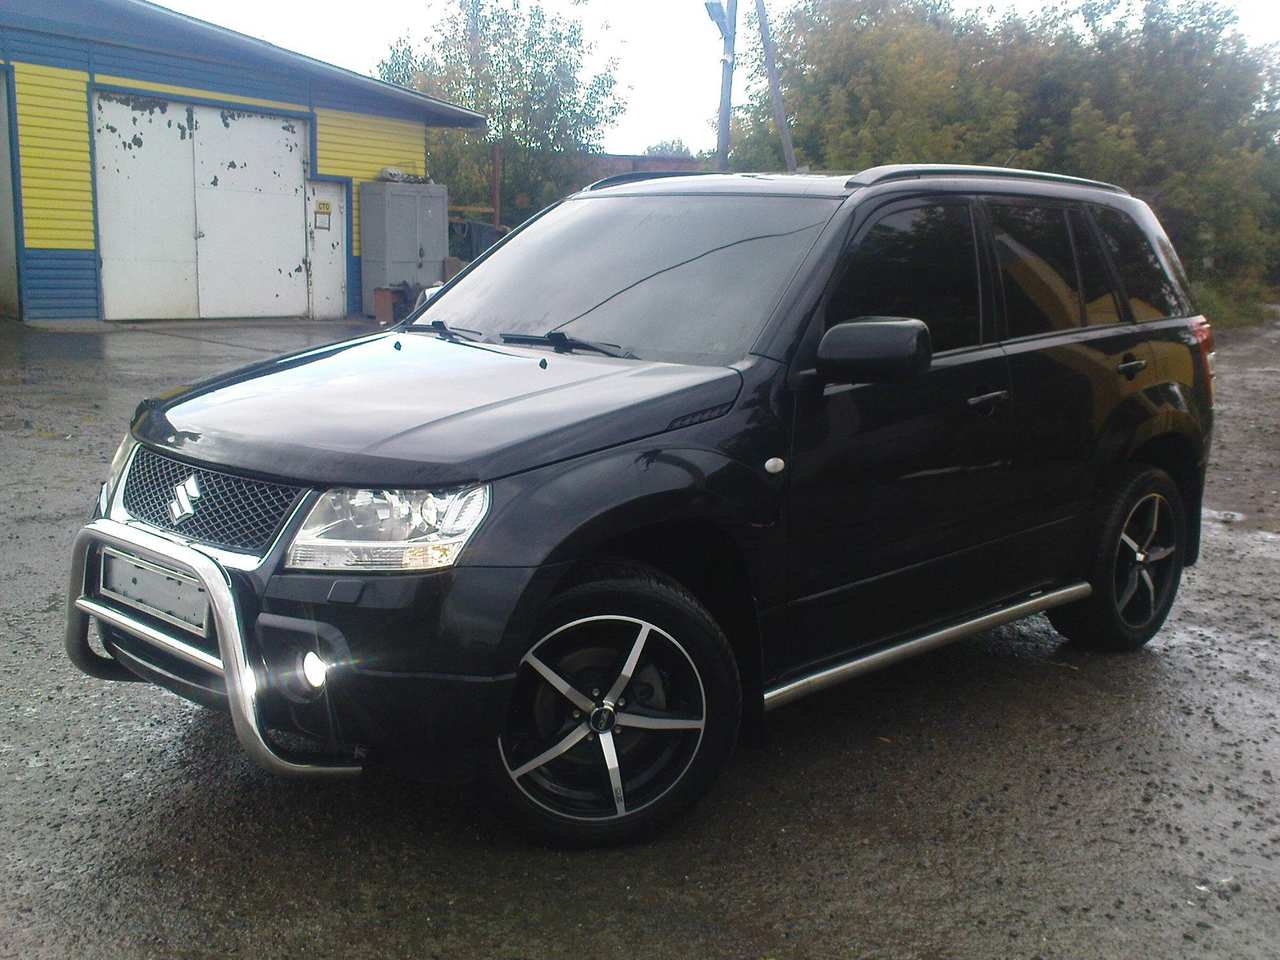 used 2007 suzuki grand vitara photos 2000cc gasoline automatic for sale. Black Bedroom Furniture Sets. Home Design Ideas